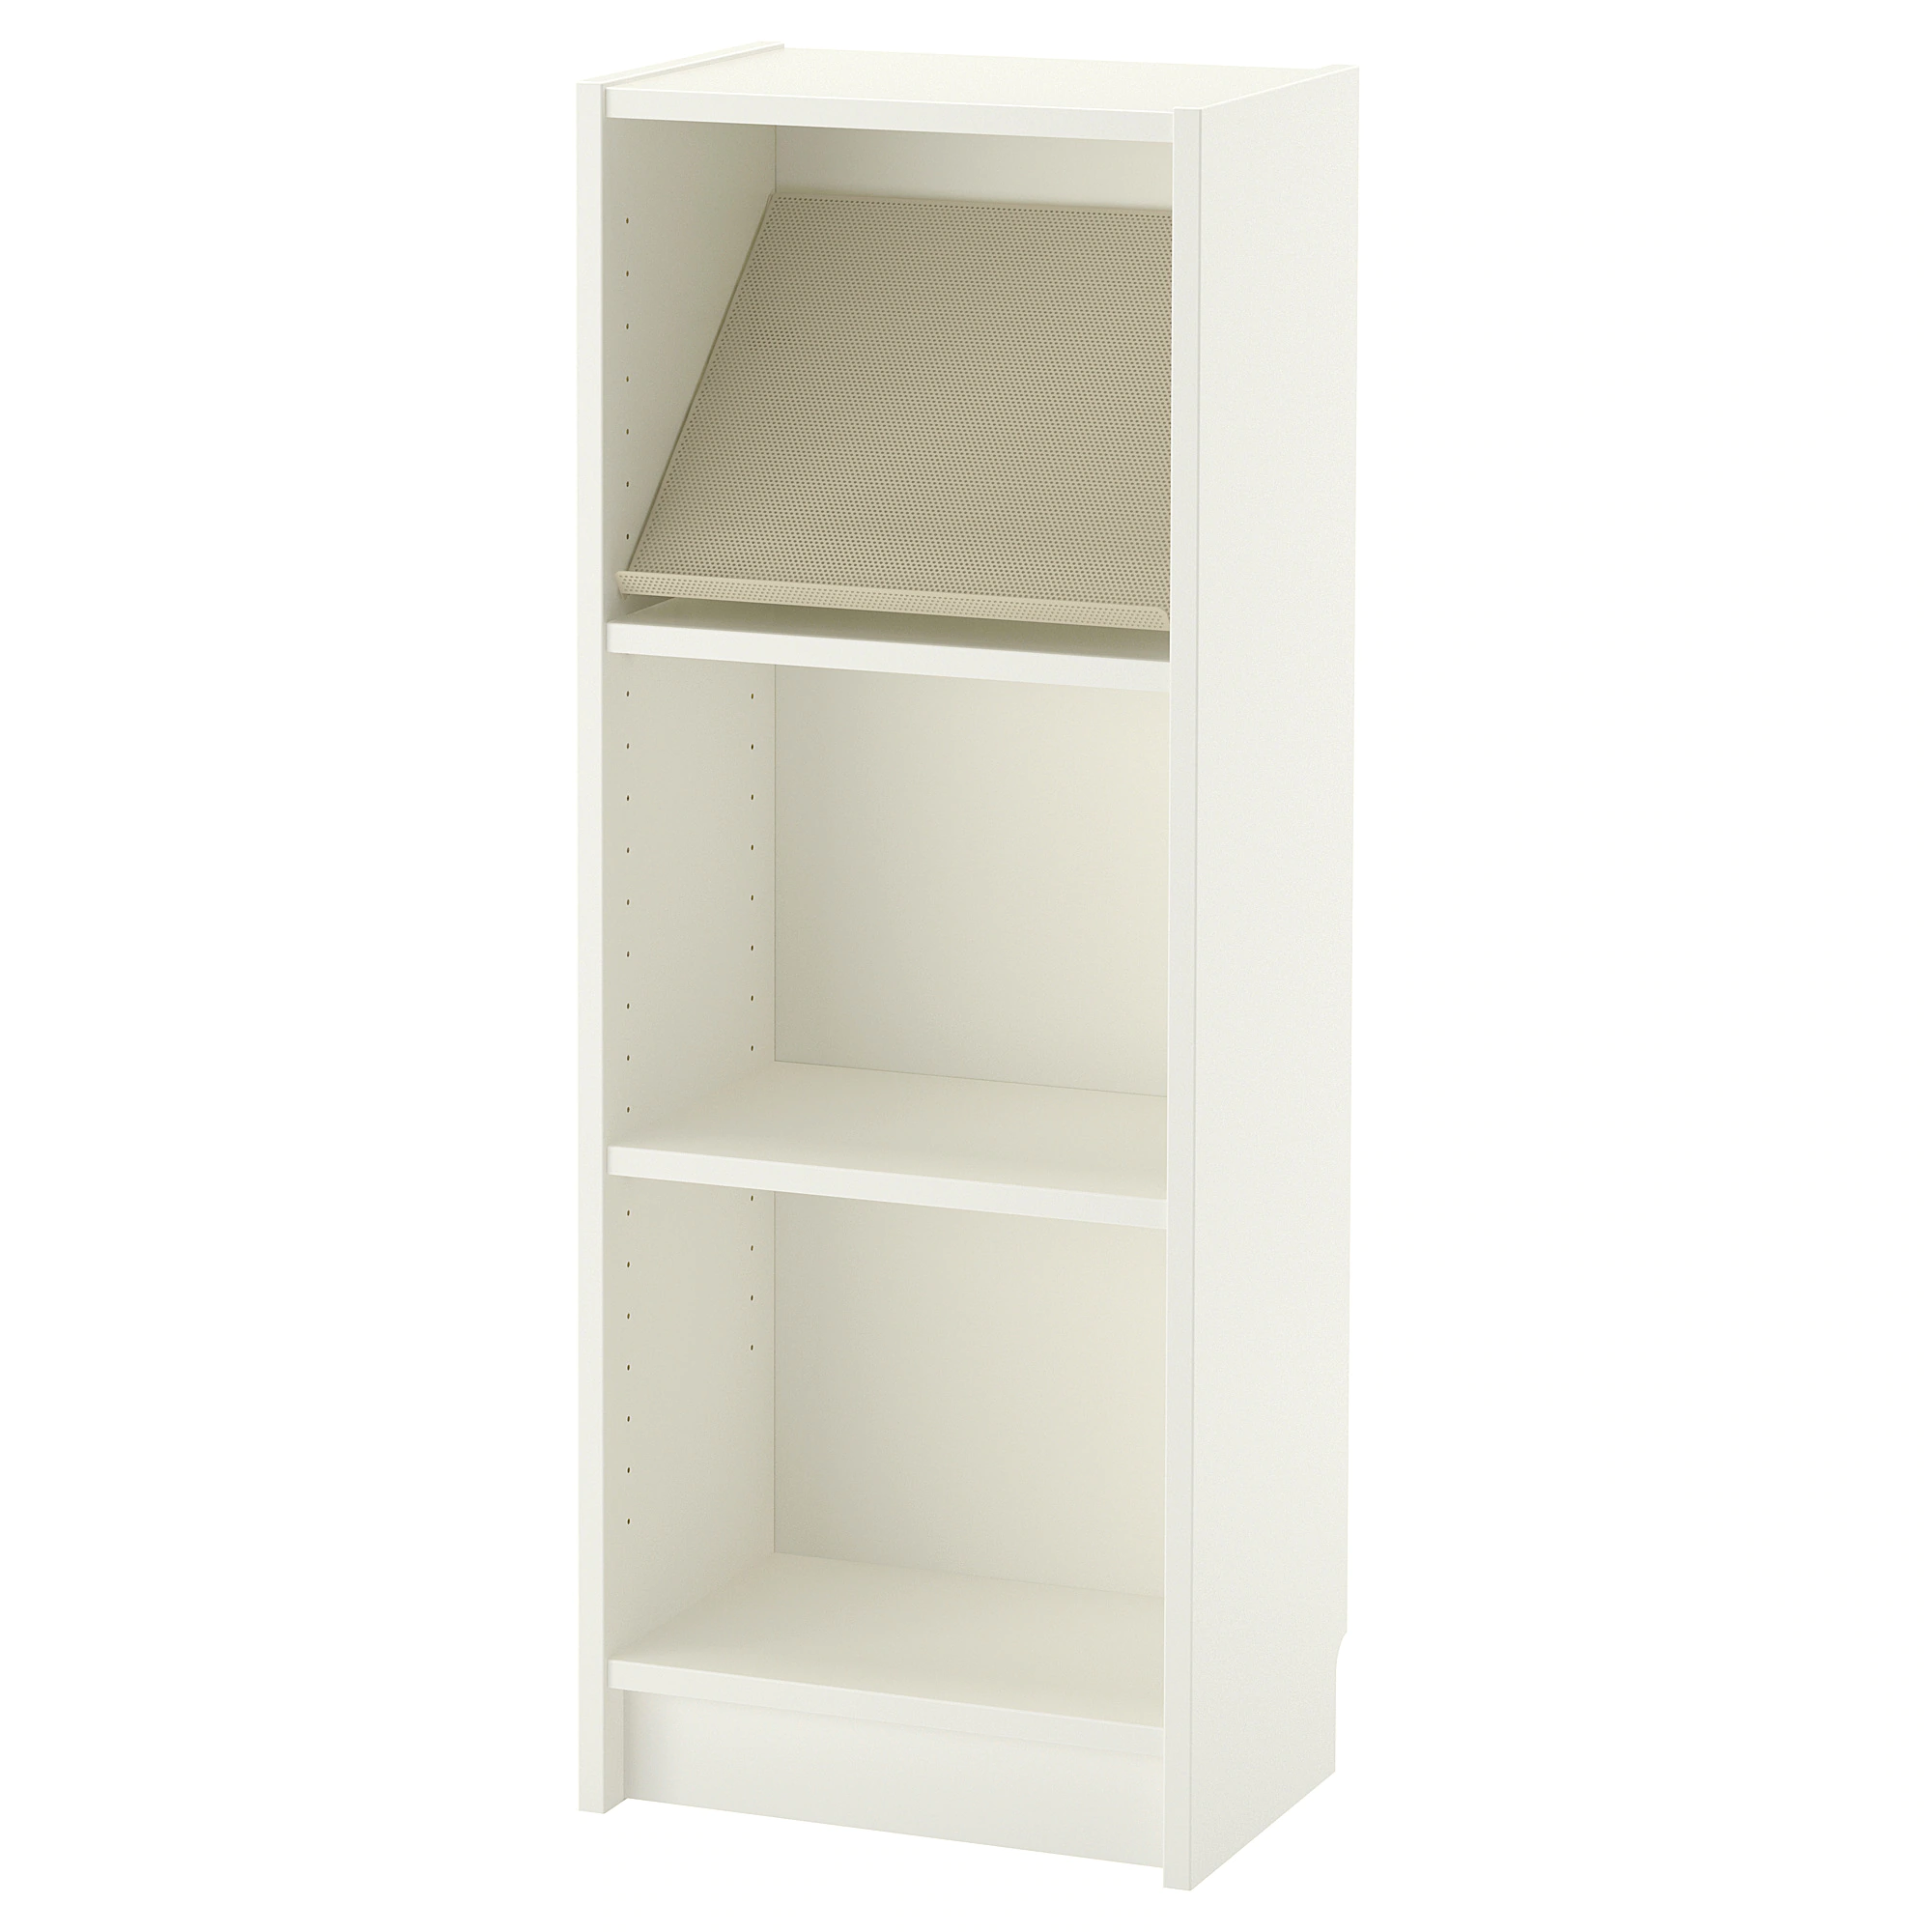 Billy Bottna Bookcase With Display Shelf White Beige 15 3 4x11x41 3 4 Ikea Display Shelves Shelves Ikea Bookcase